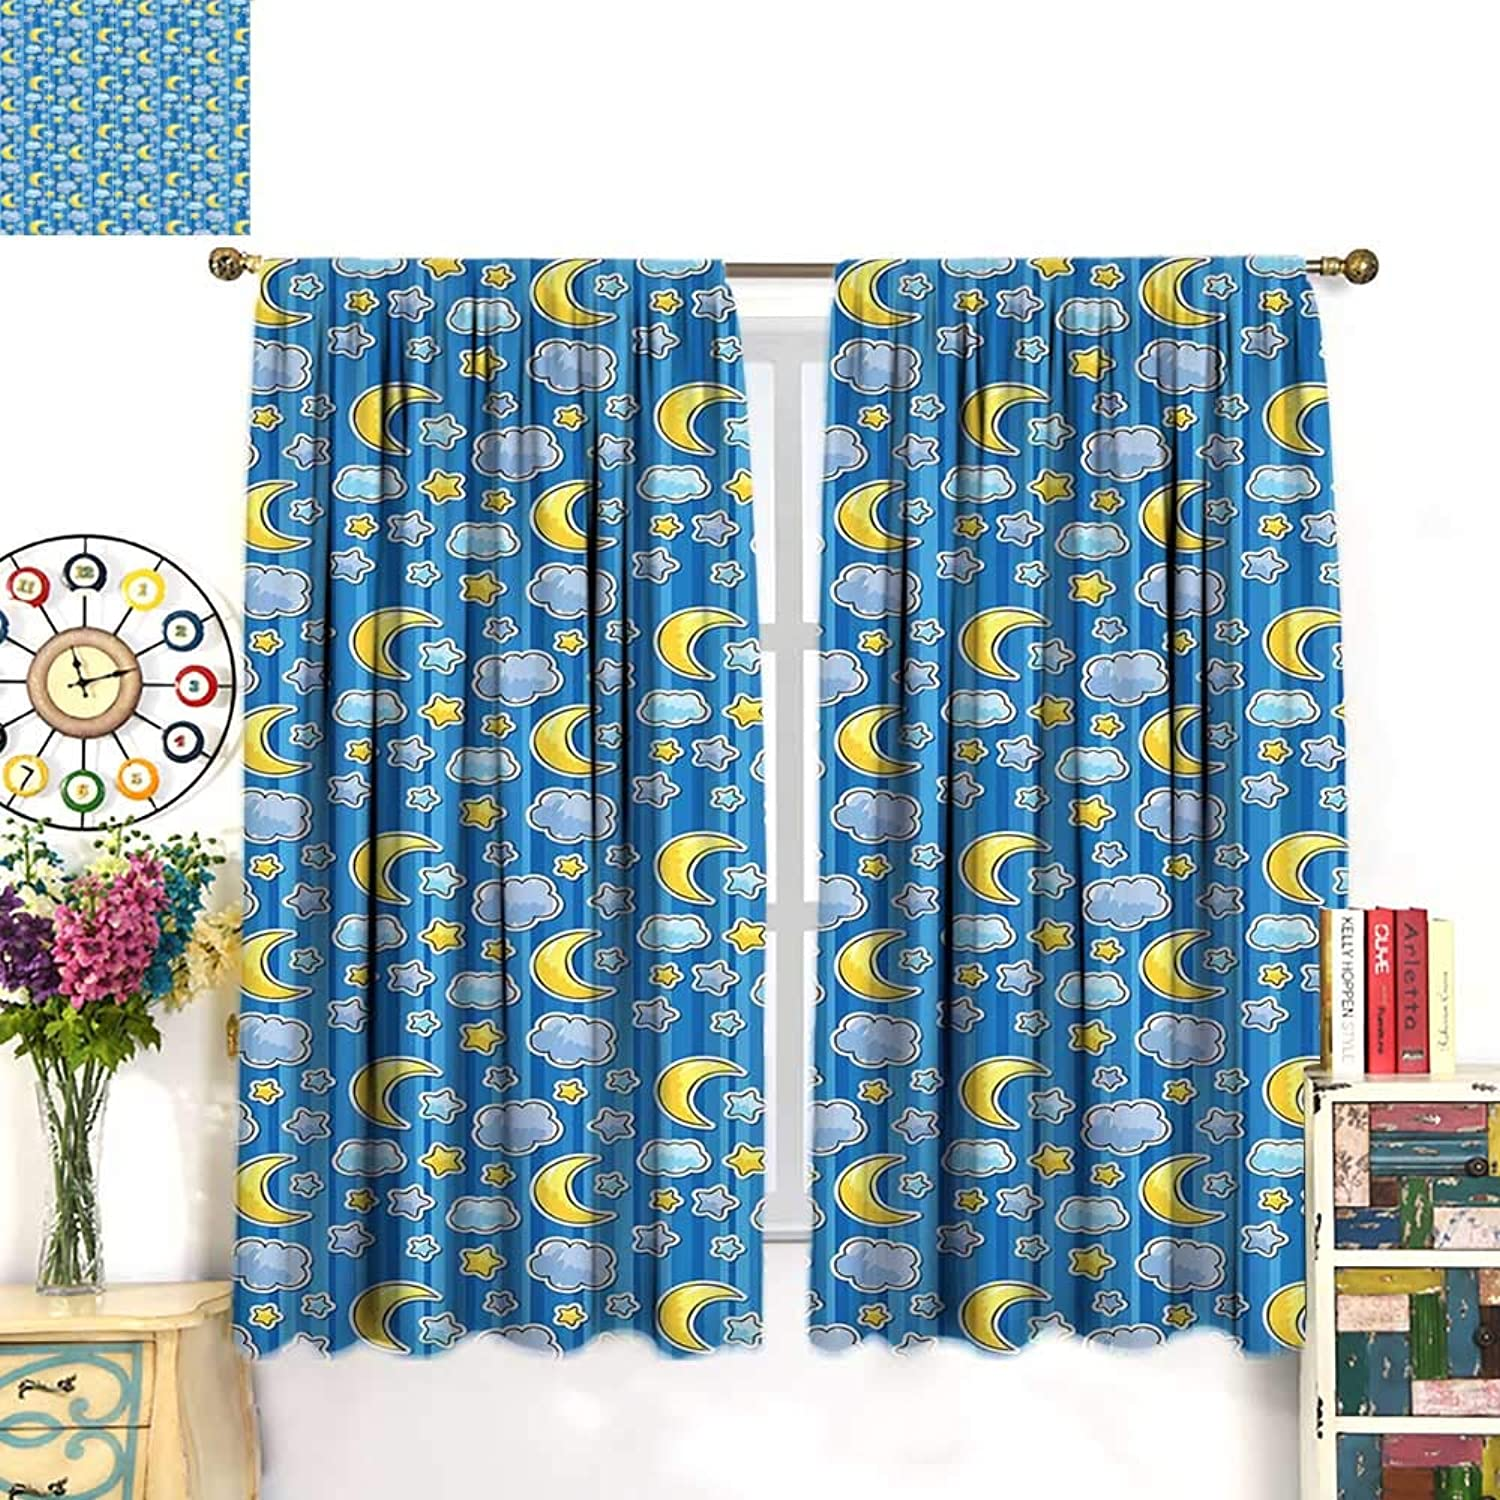 WinfreyDecor Baby Decor Curtains by Abstract Skyline with Stars Clouds and Crescent Moon greenical Striped Backdrop DoodleBlackout curtainbluee Yellow. W63 x L45